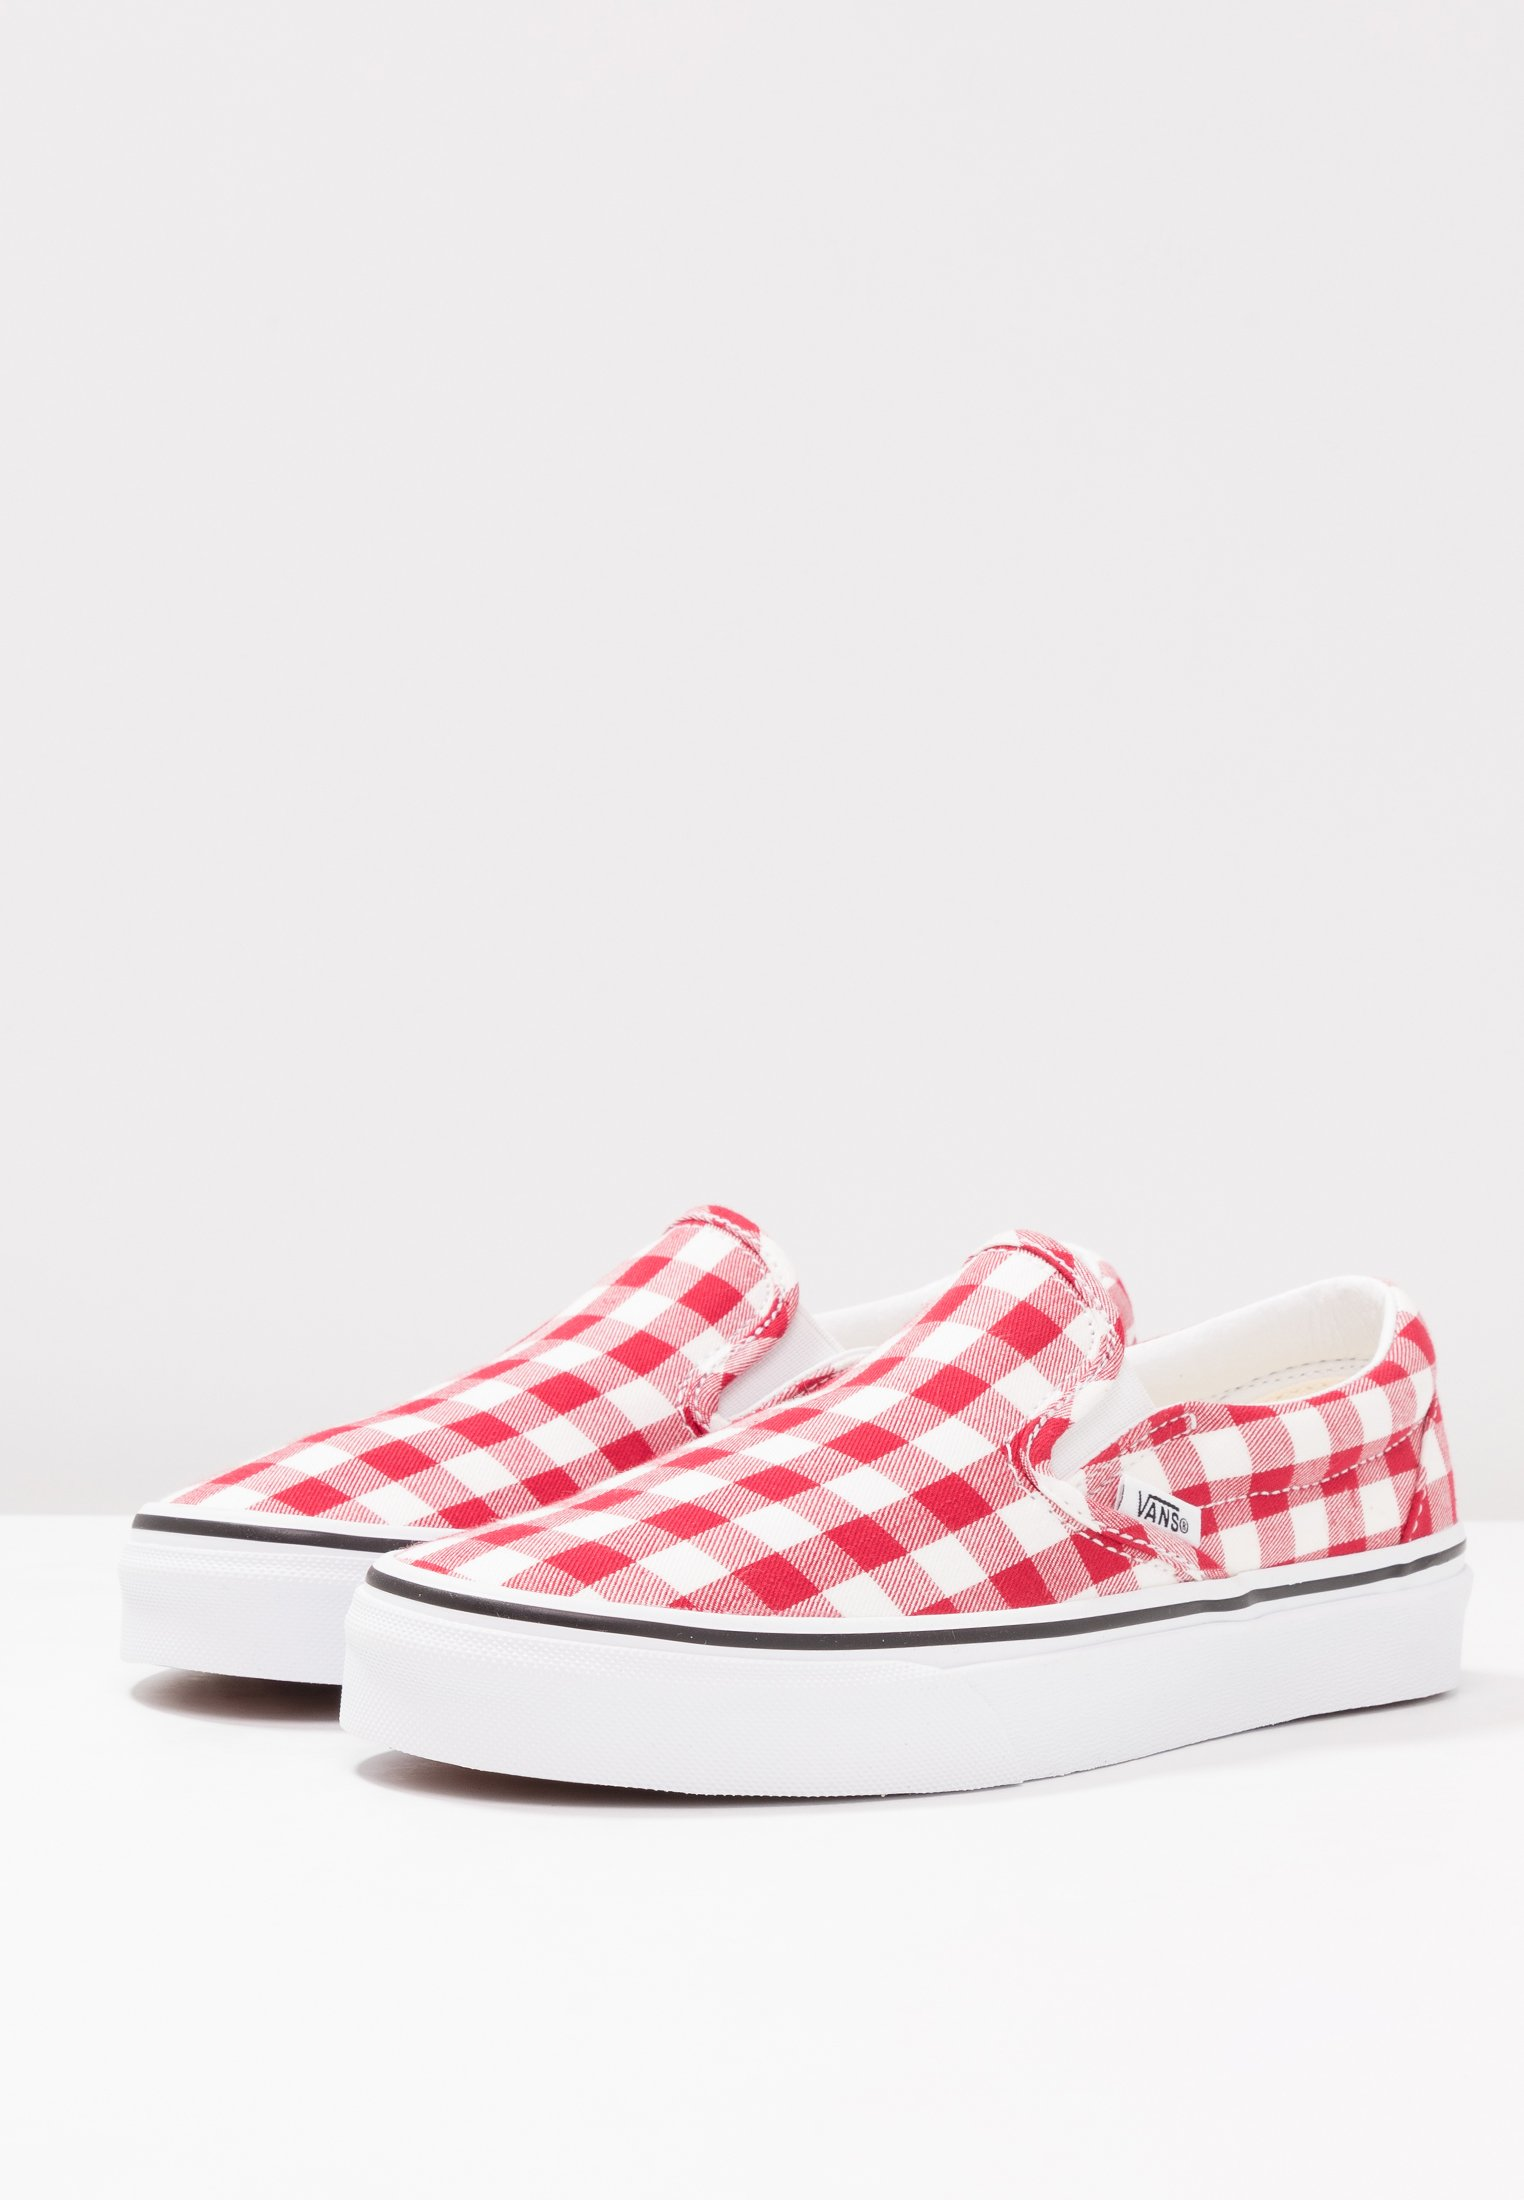 White Racing Vans ClassicMocassins Red true b76fgy